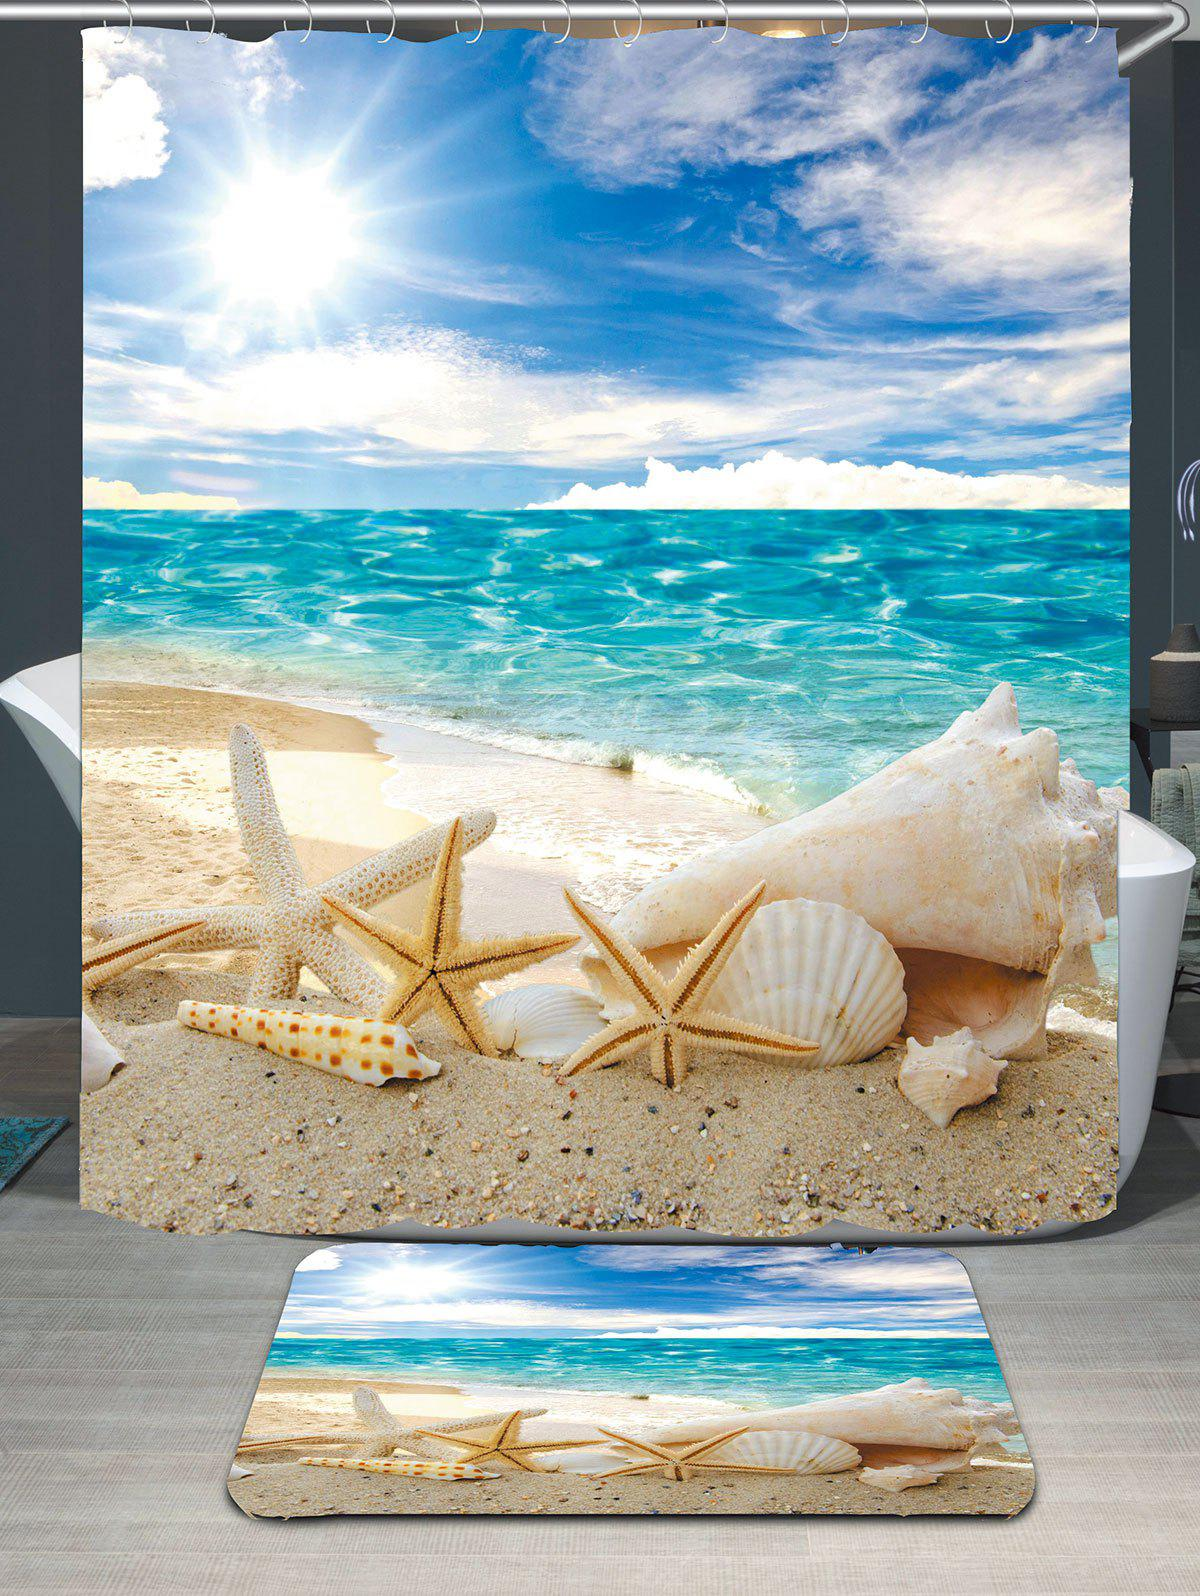 Conch Shells Beach Waterproof Shower Curtain Rug SetHOME<br><br>Size: W71 INCH * L71 INCH; Color: BLUE; Products Type: Shower Curtains; Materials: Coral FLeece,Polyester; Style: Beach Style; Size: 180 x 180 + 40 x 60 (CM); Number of Hook Holes: 12; Package Contents: 1 x Shower Curtain 1 x Rug 1 x Hooks (Set);